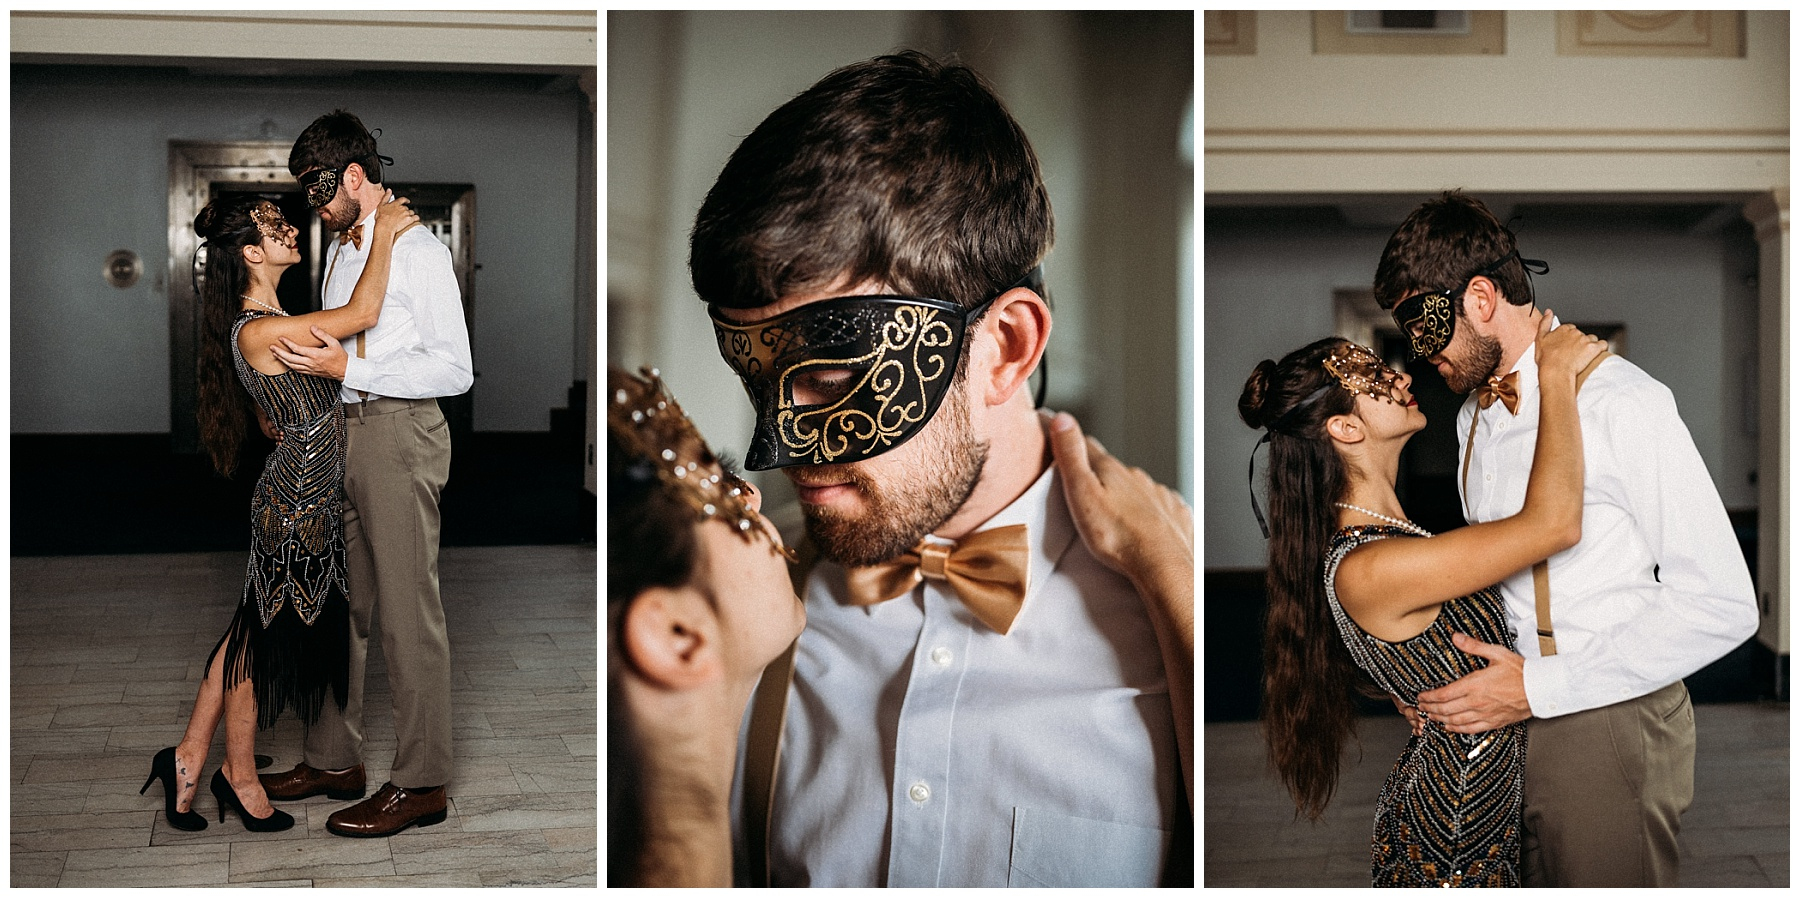 gatsby-styled-couples-shoot-final-g-web-20190707-0035_CCS-1.jpg